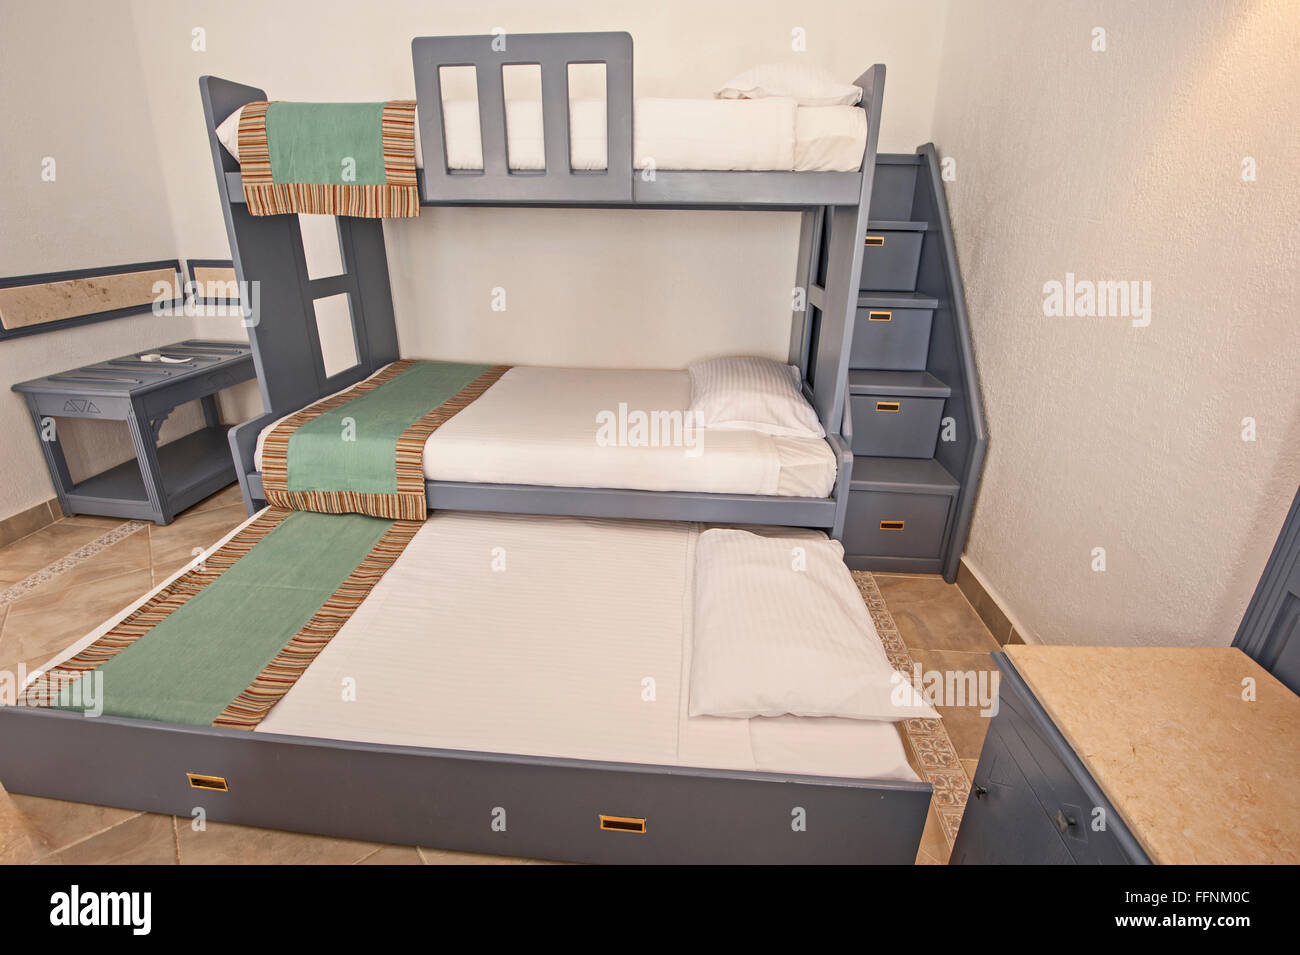 Space Saving Bunk Beds In Family Bedroom Storage Concept Idea With Steps